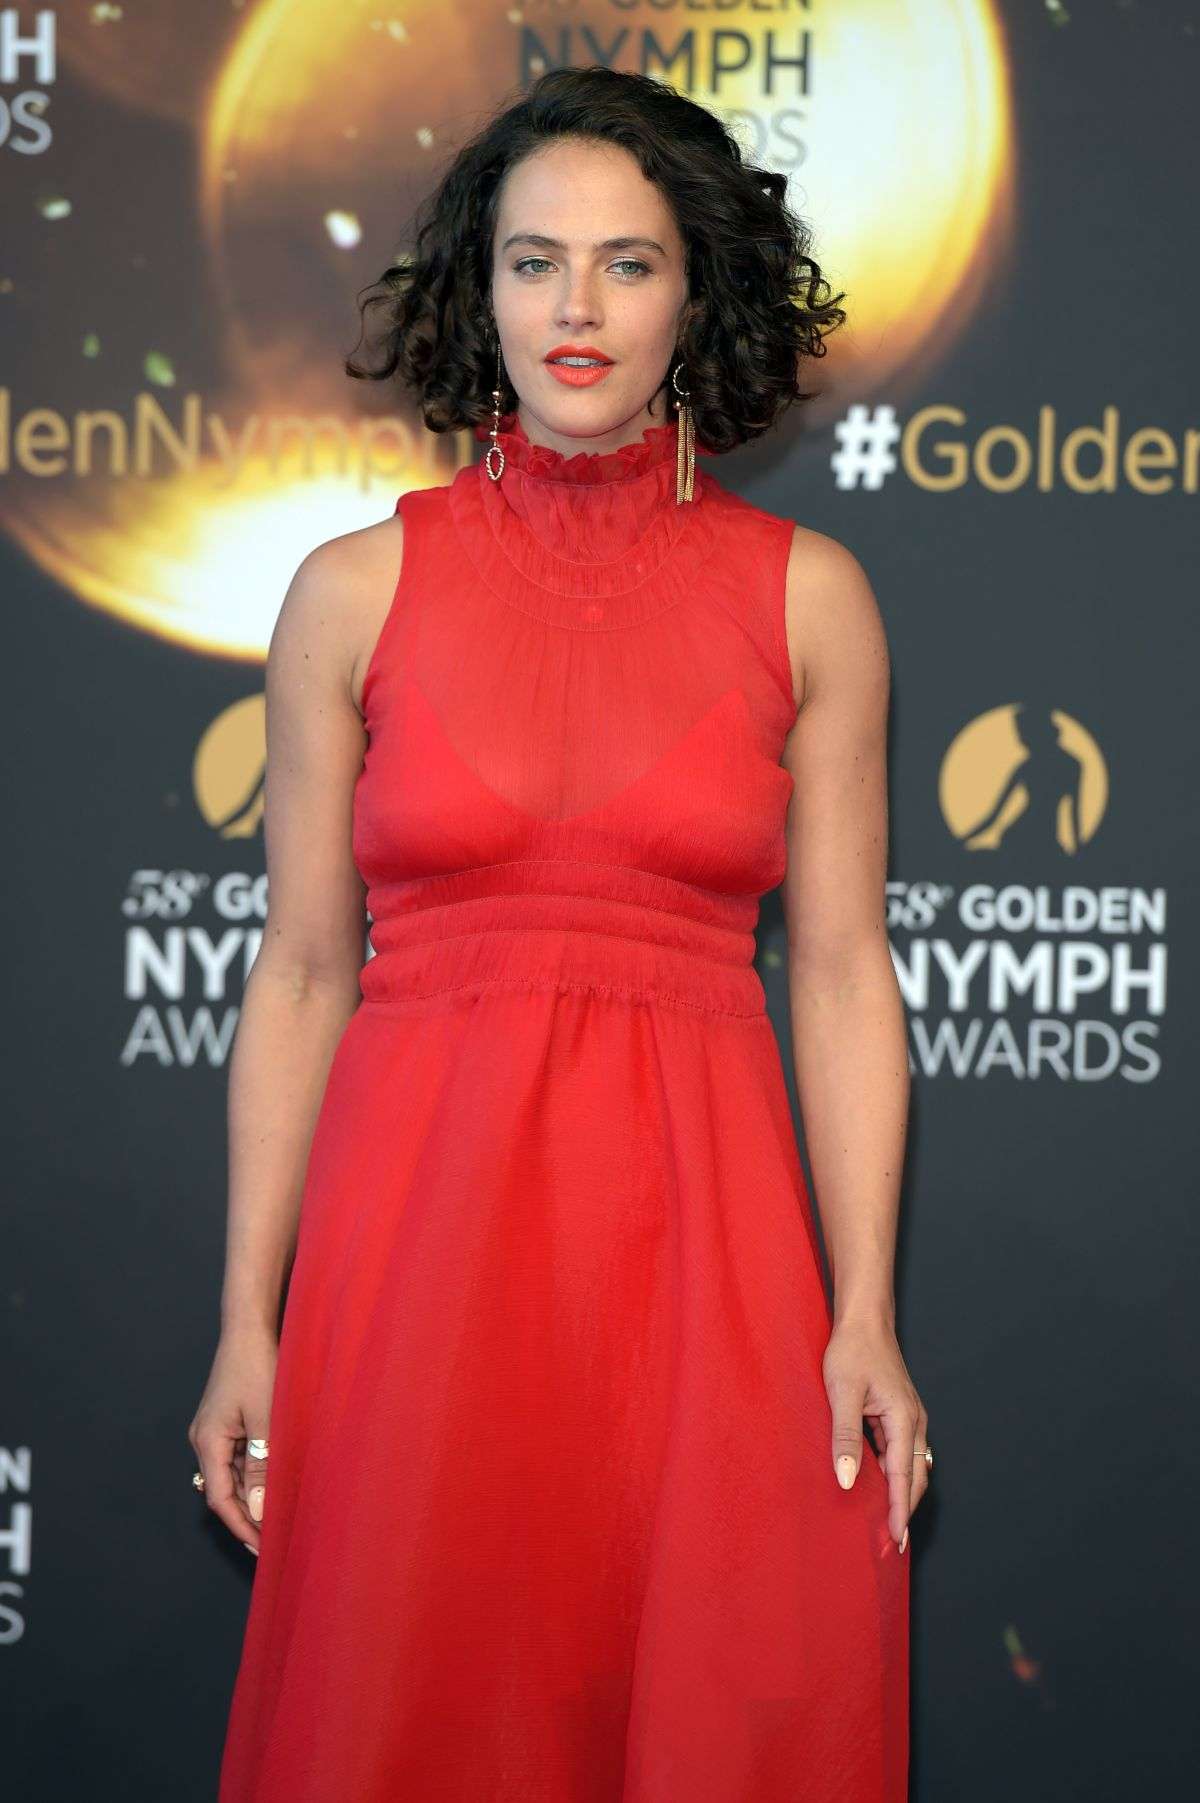 Jessica brown findlay 58th monte carlo television festival closing ceremony 6 nudes (37 photo), Leaked Celebrites foto